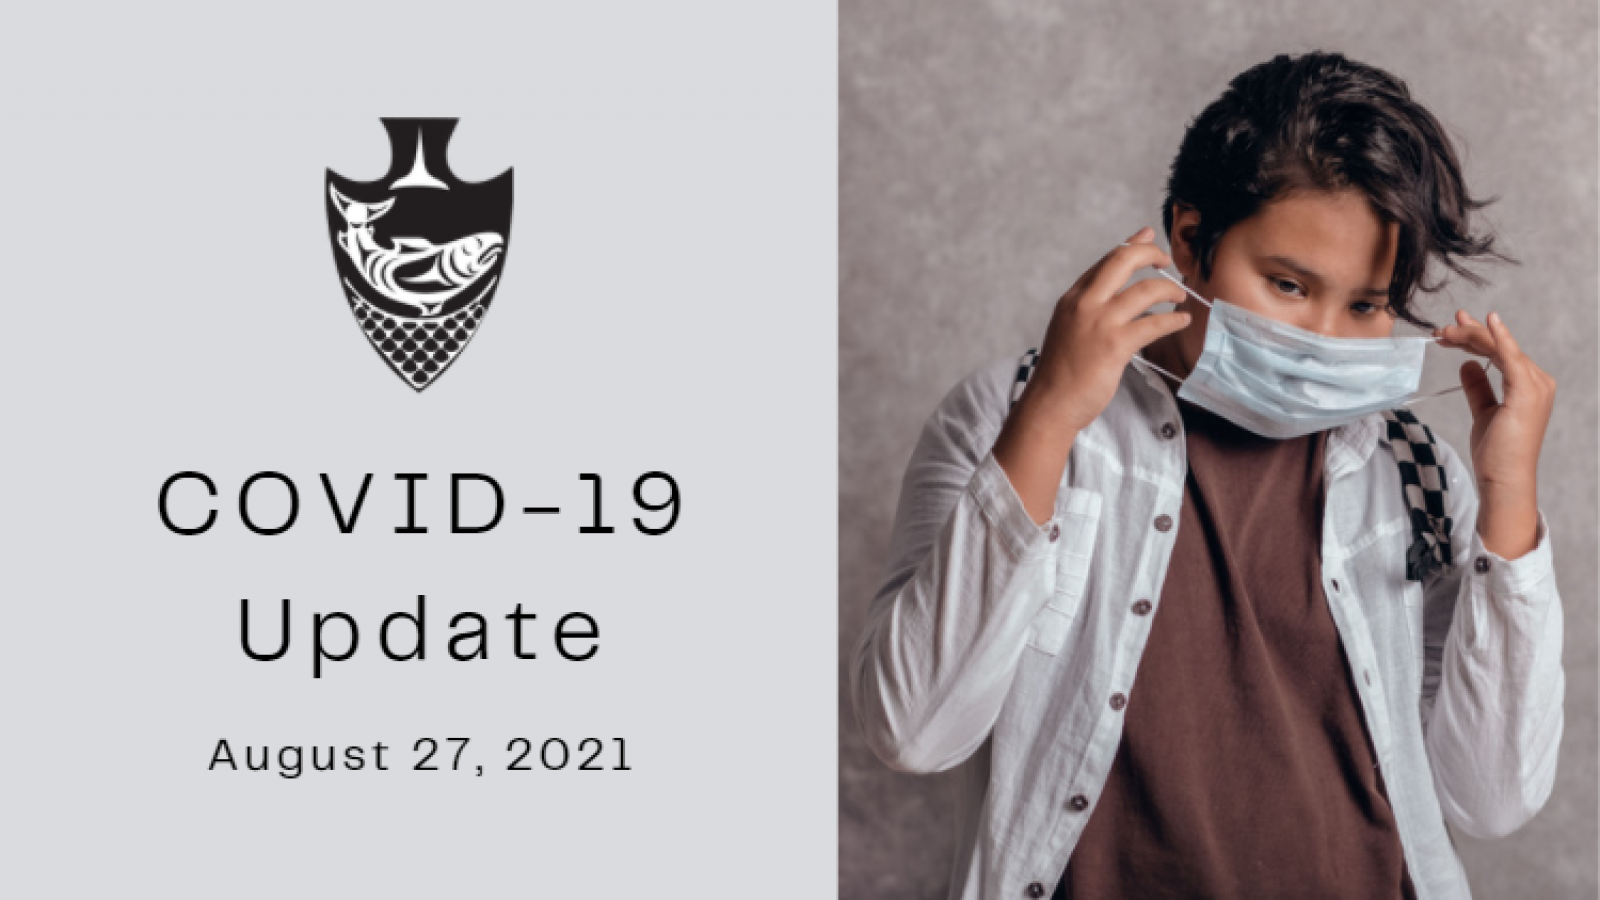 Musqueam COVID-19 update for August 27, 2021